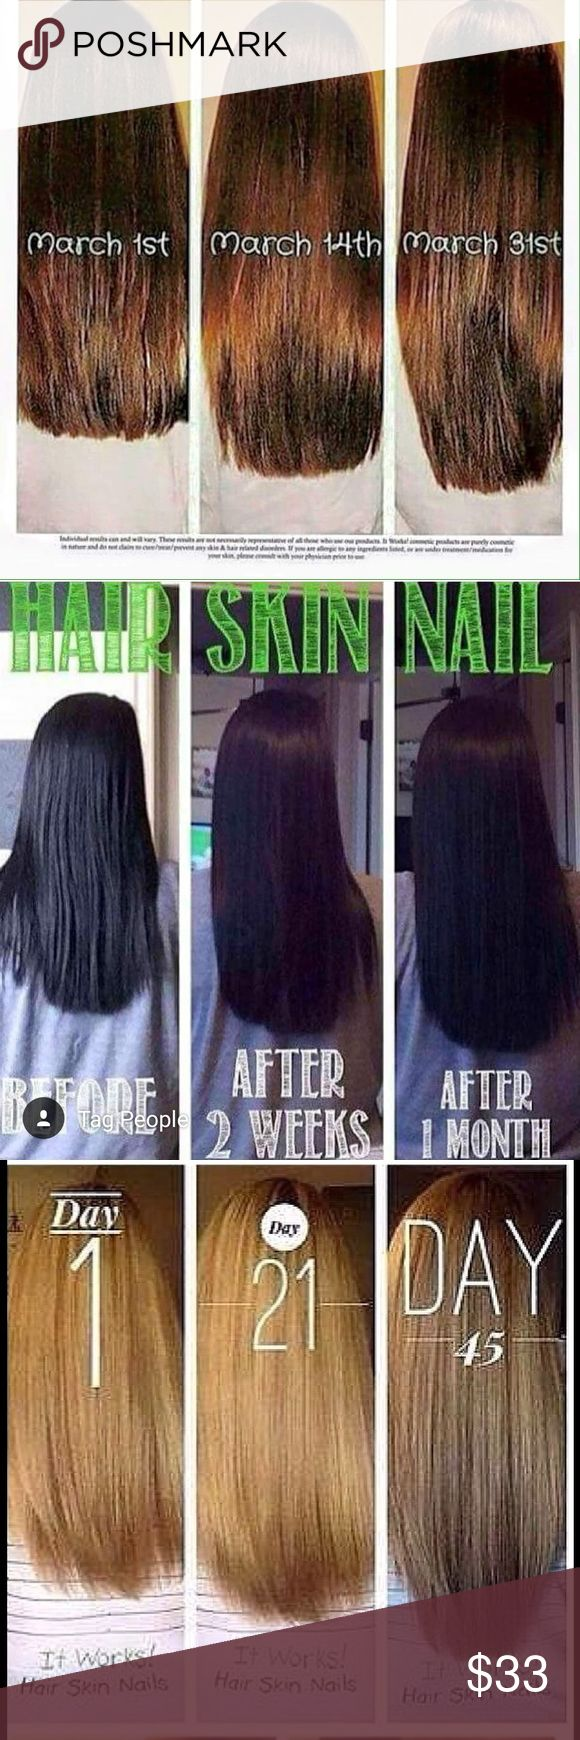 Best  Biotin Results Ideas On Pinterest - How much biotin to take for hair growth